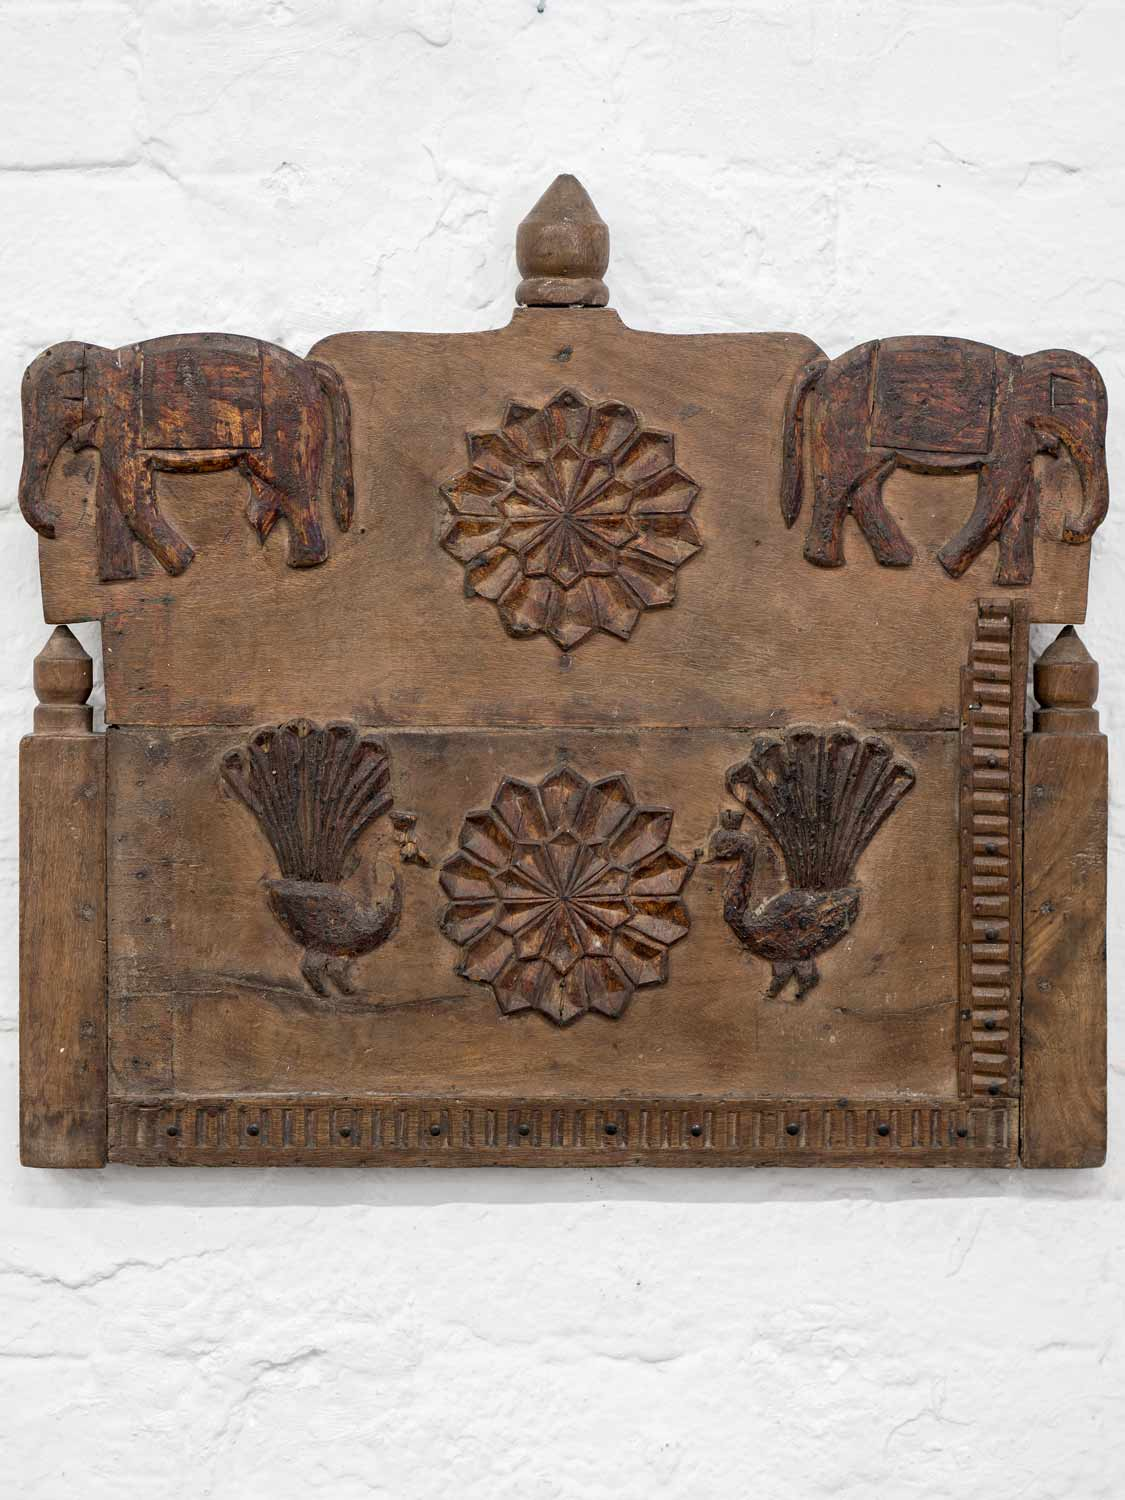 Carved Wooden Panel with Elephants and Peacocks